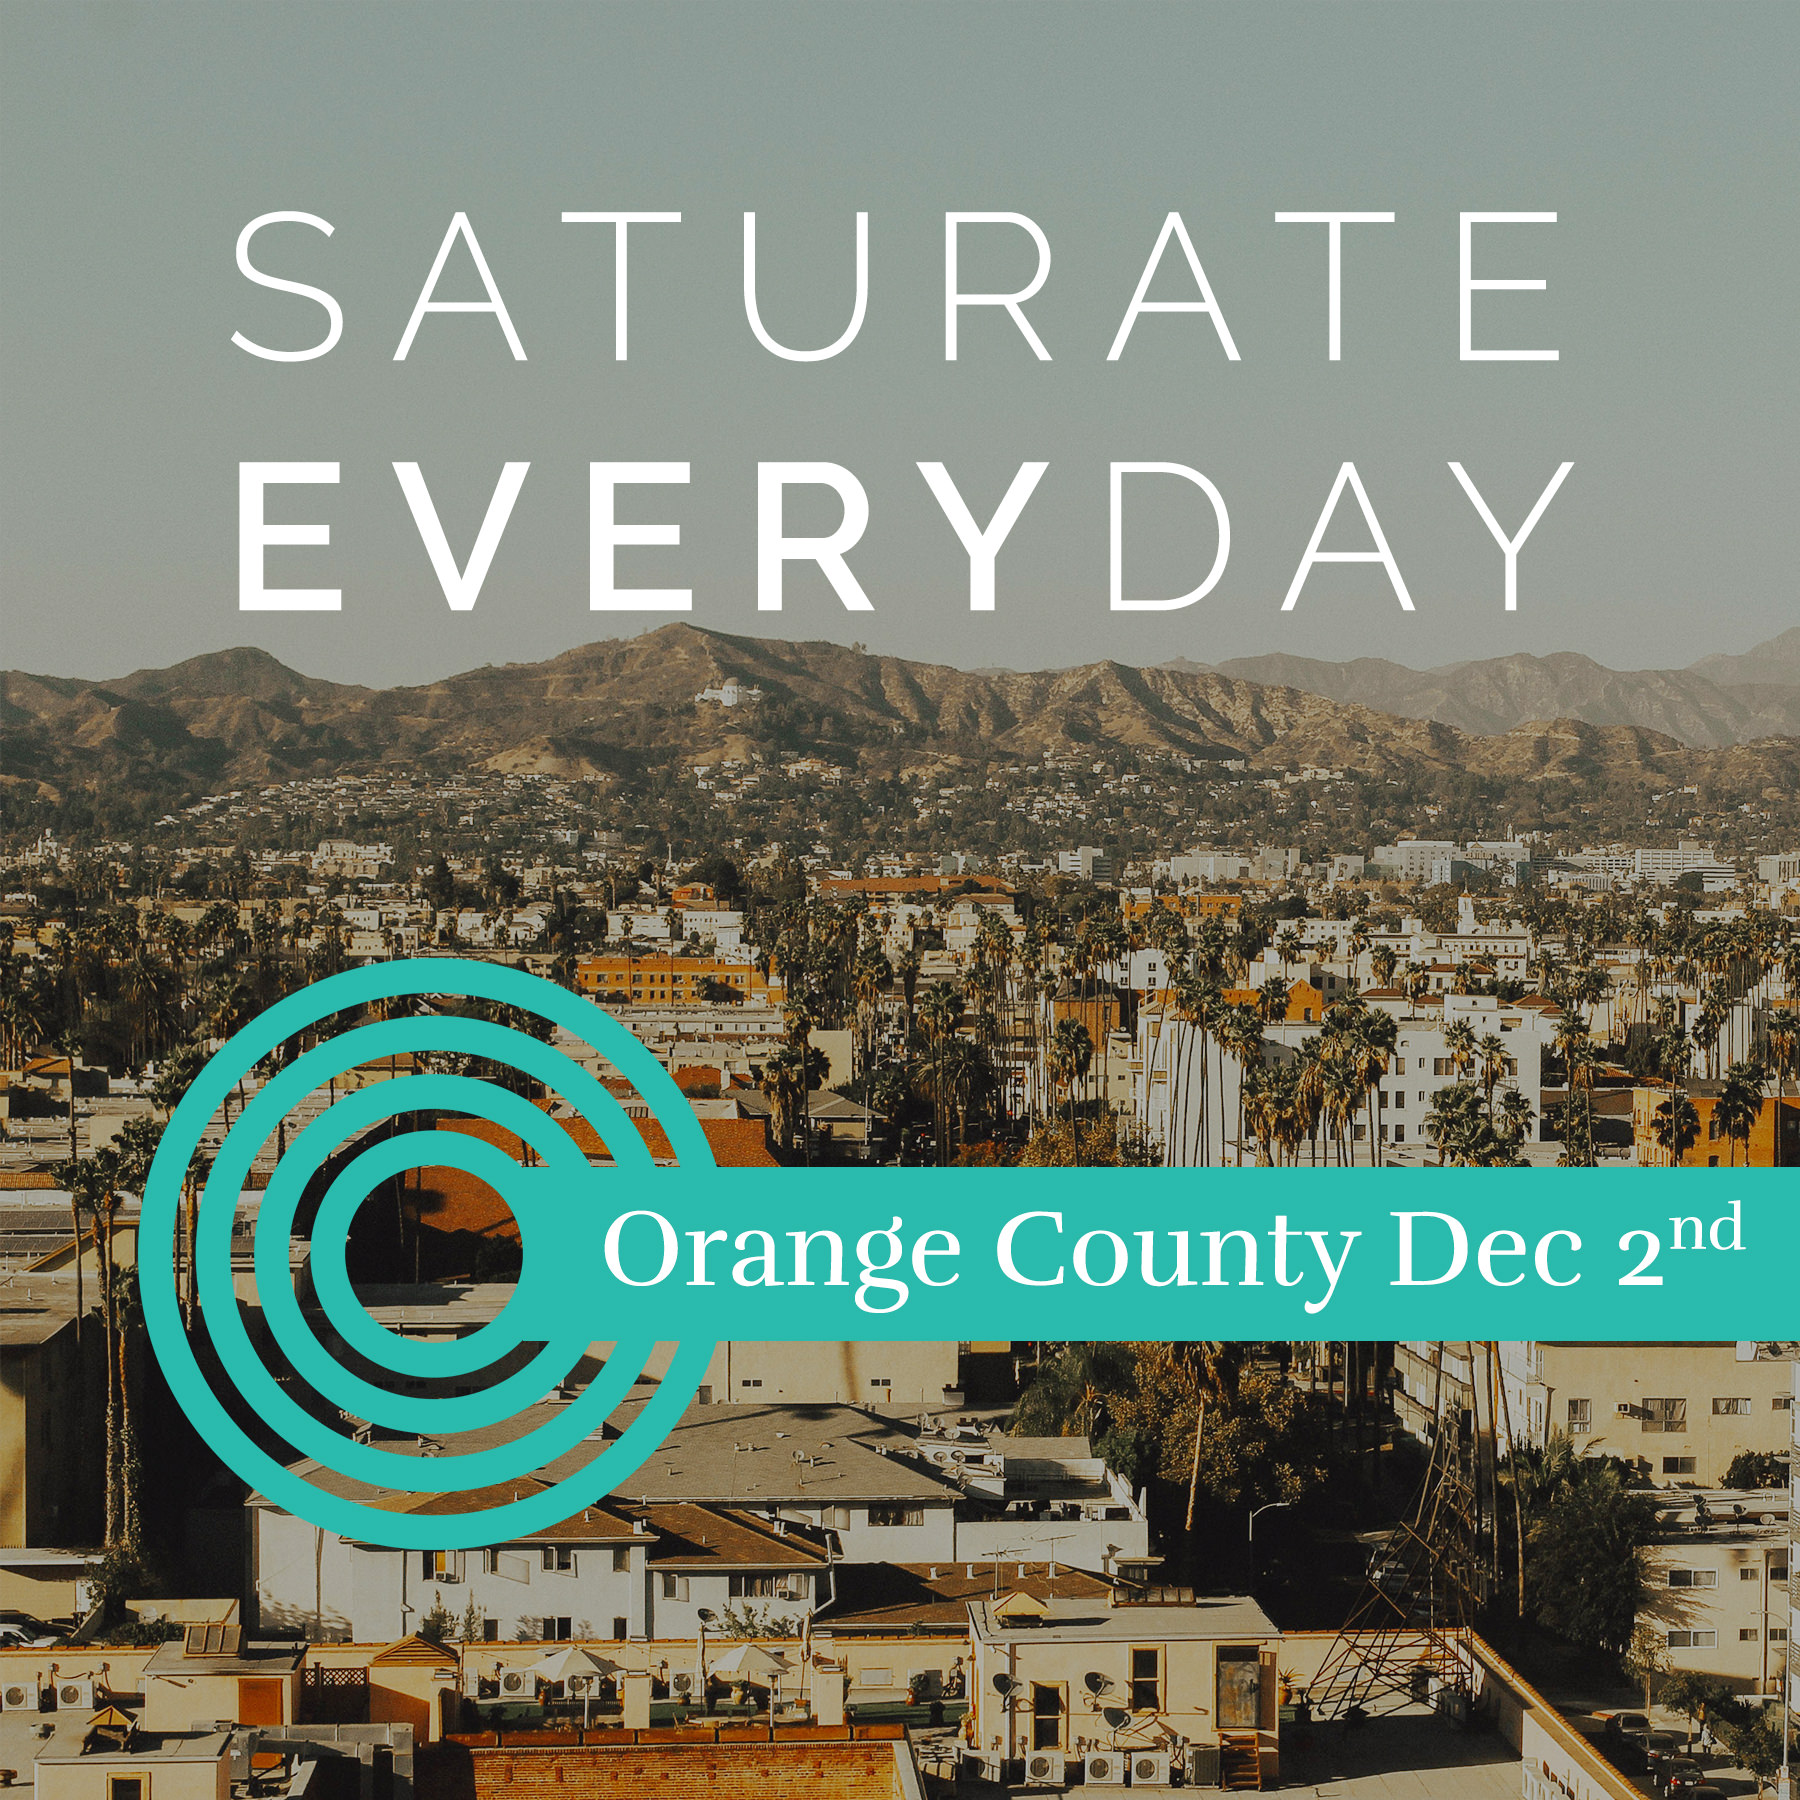 Orange County Saturate Everyday